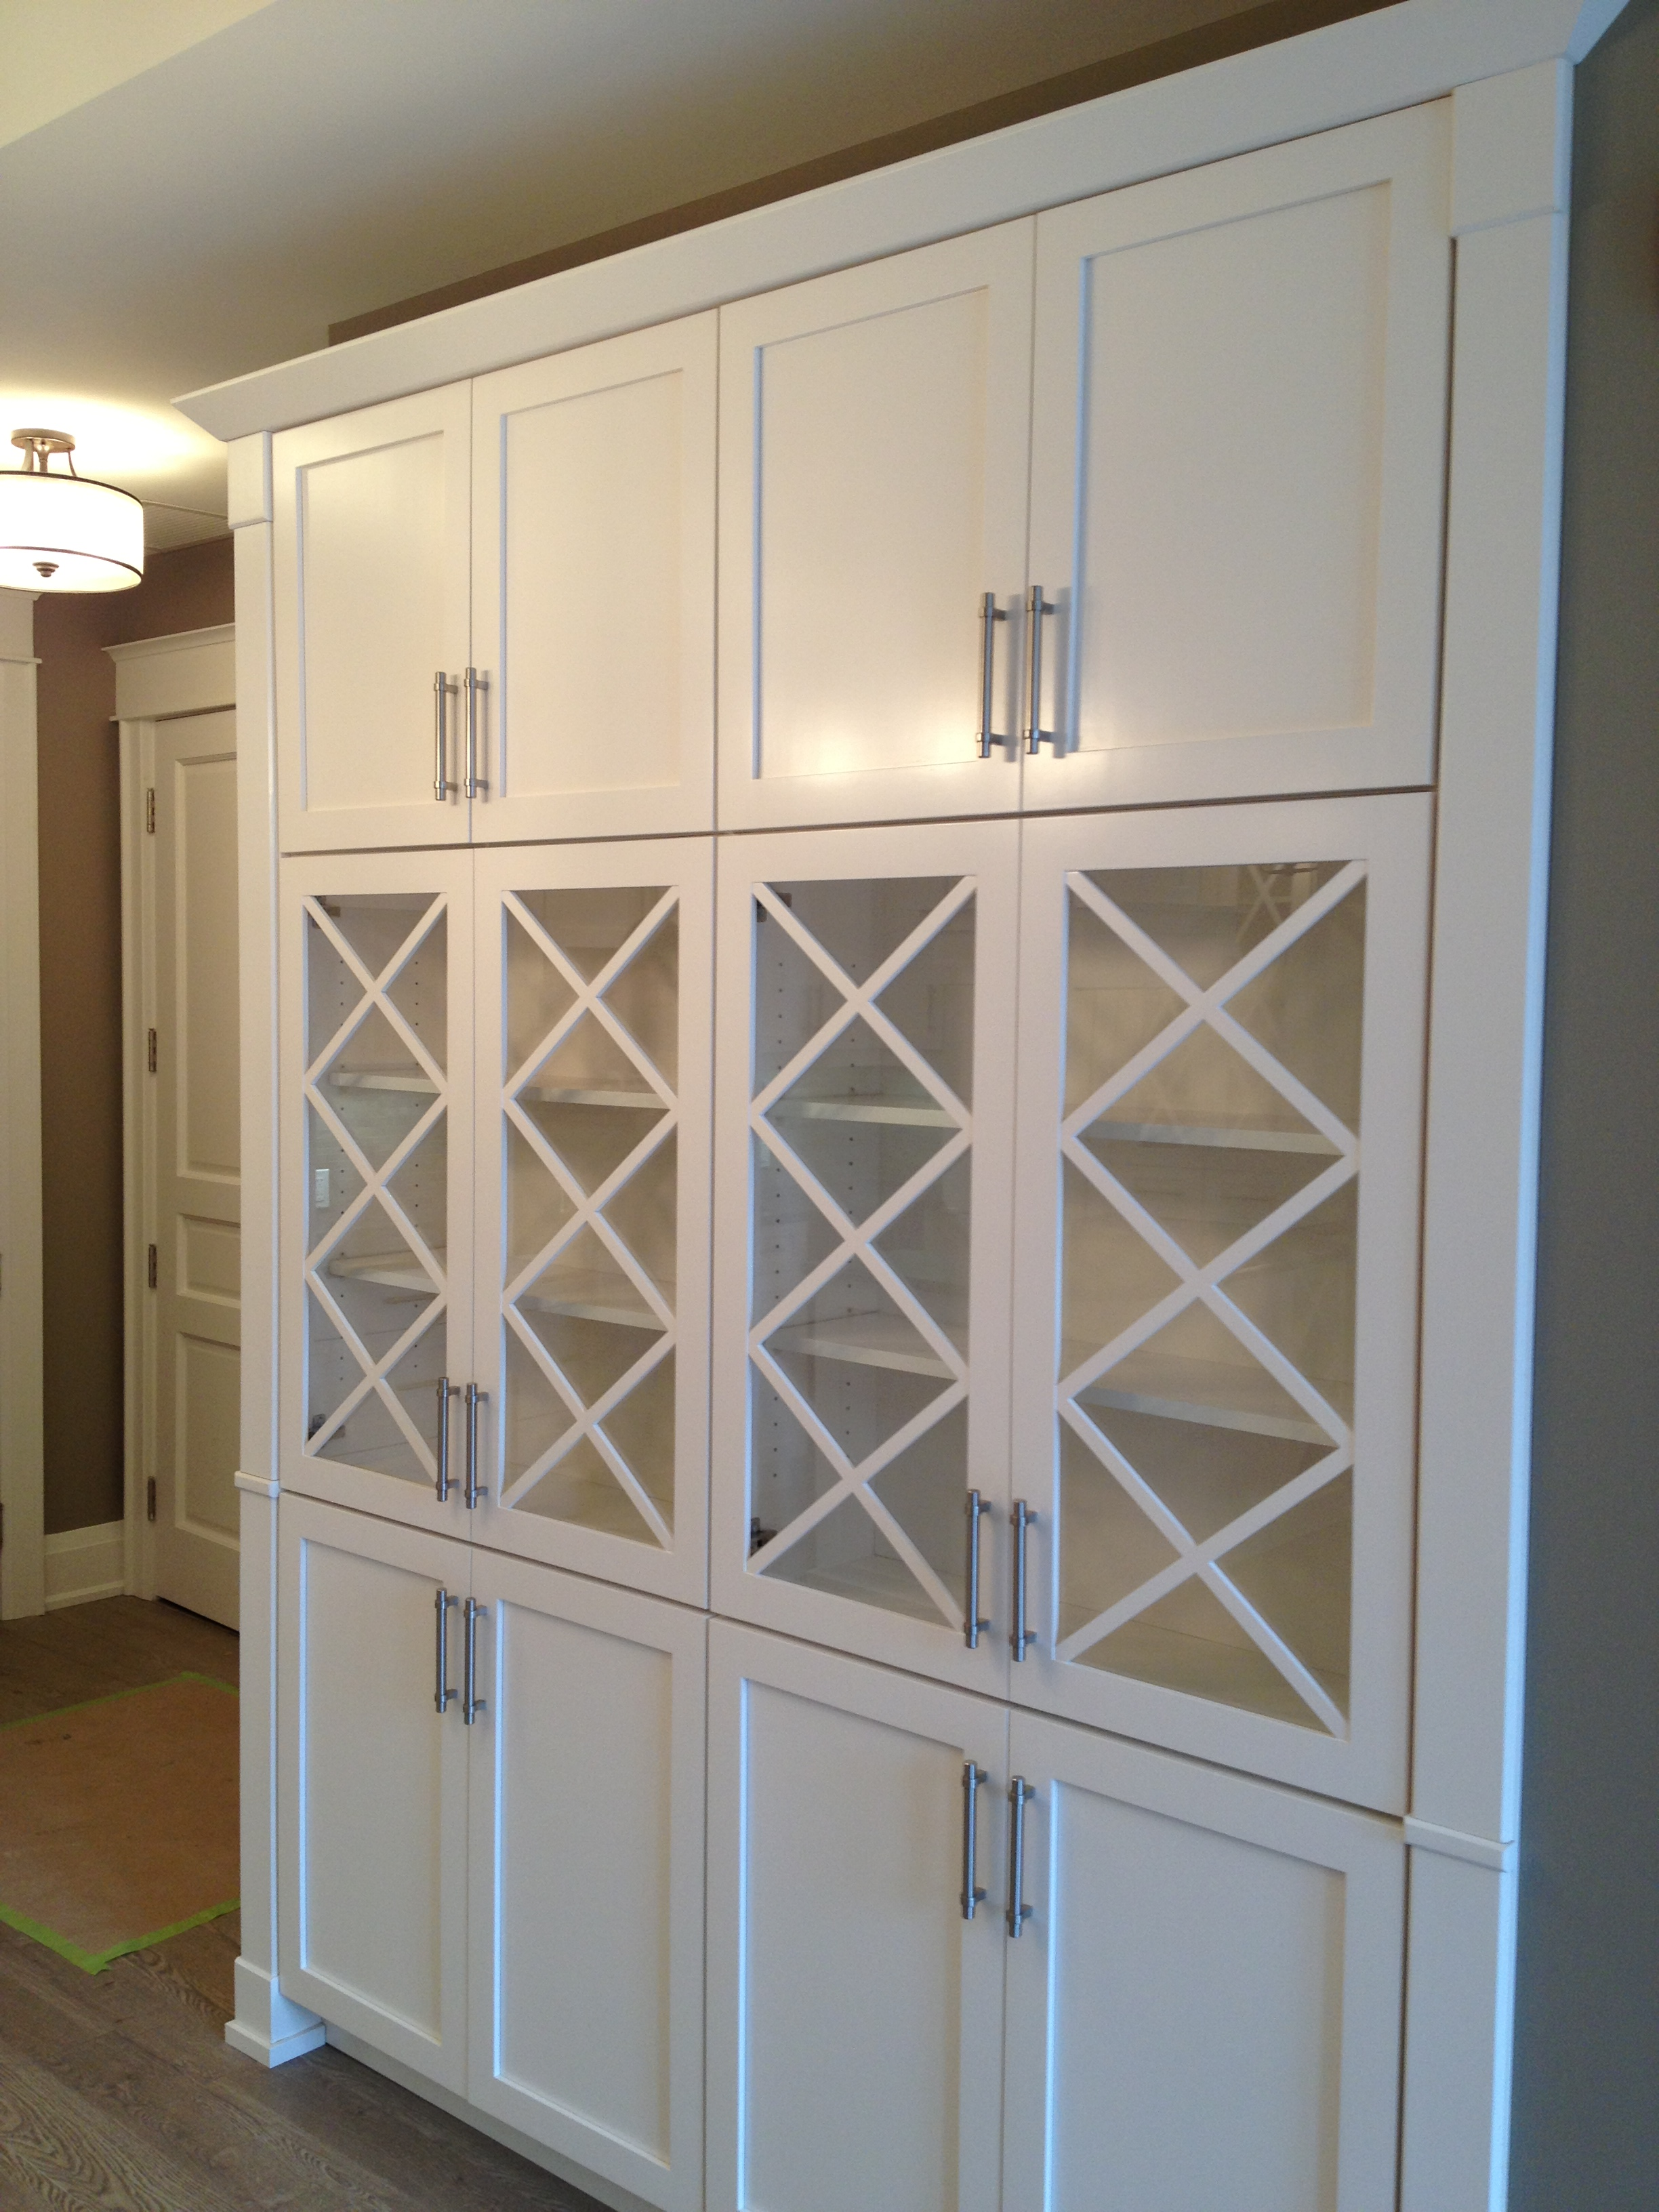 Hutch cabinetry